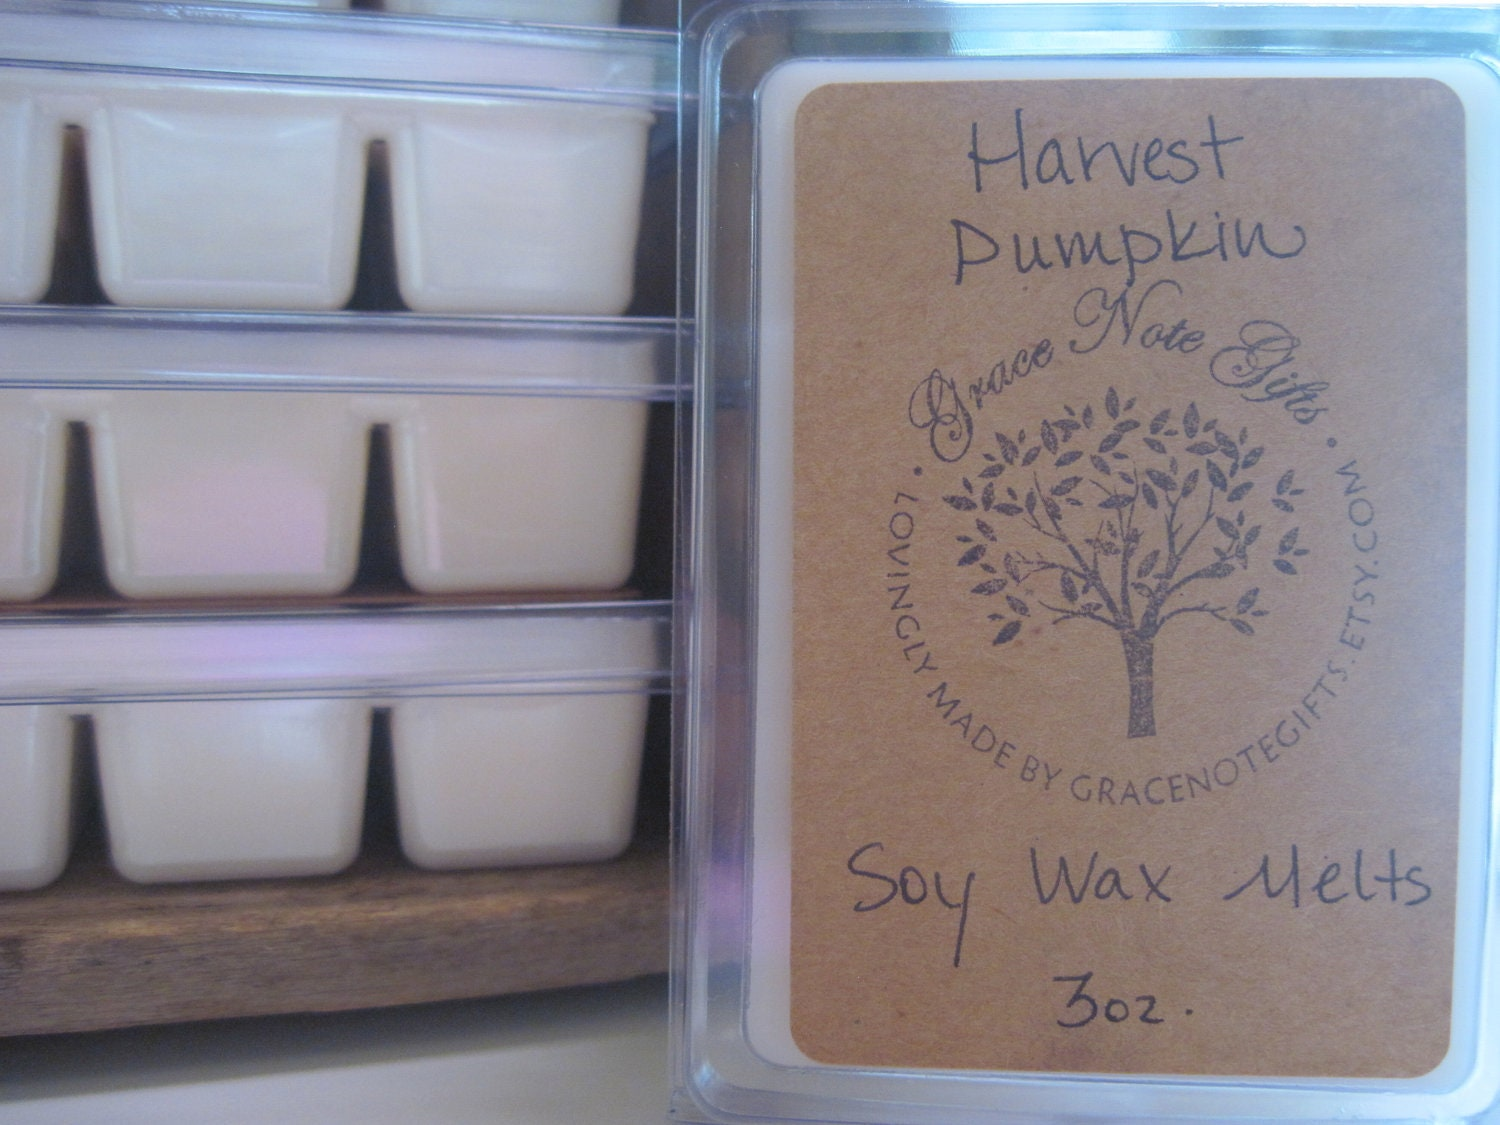 HARVEST PUMPKIN Soy Wax Tarts, Harvest Pumpkin Scented Soy Wax Melts, Soy Tarts, Soy Melts, Wax Tarts, Hand Poured Candle Melts - gracenotegifts